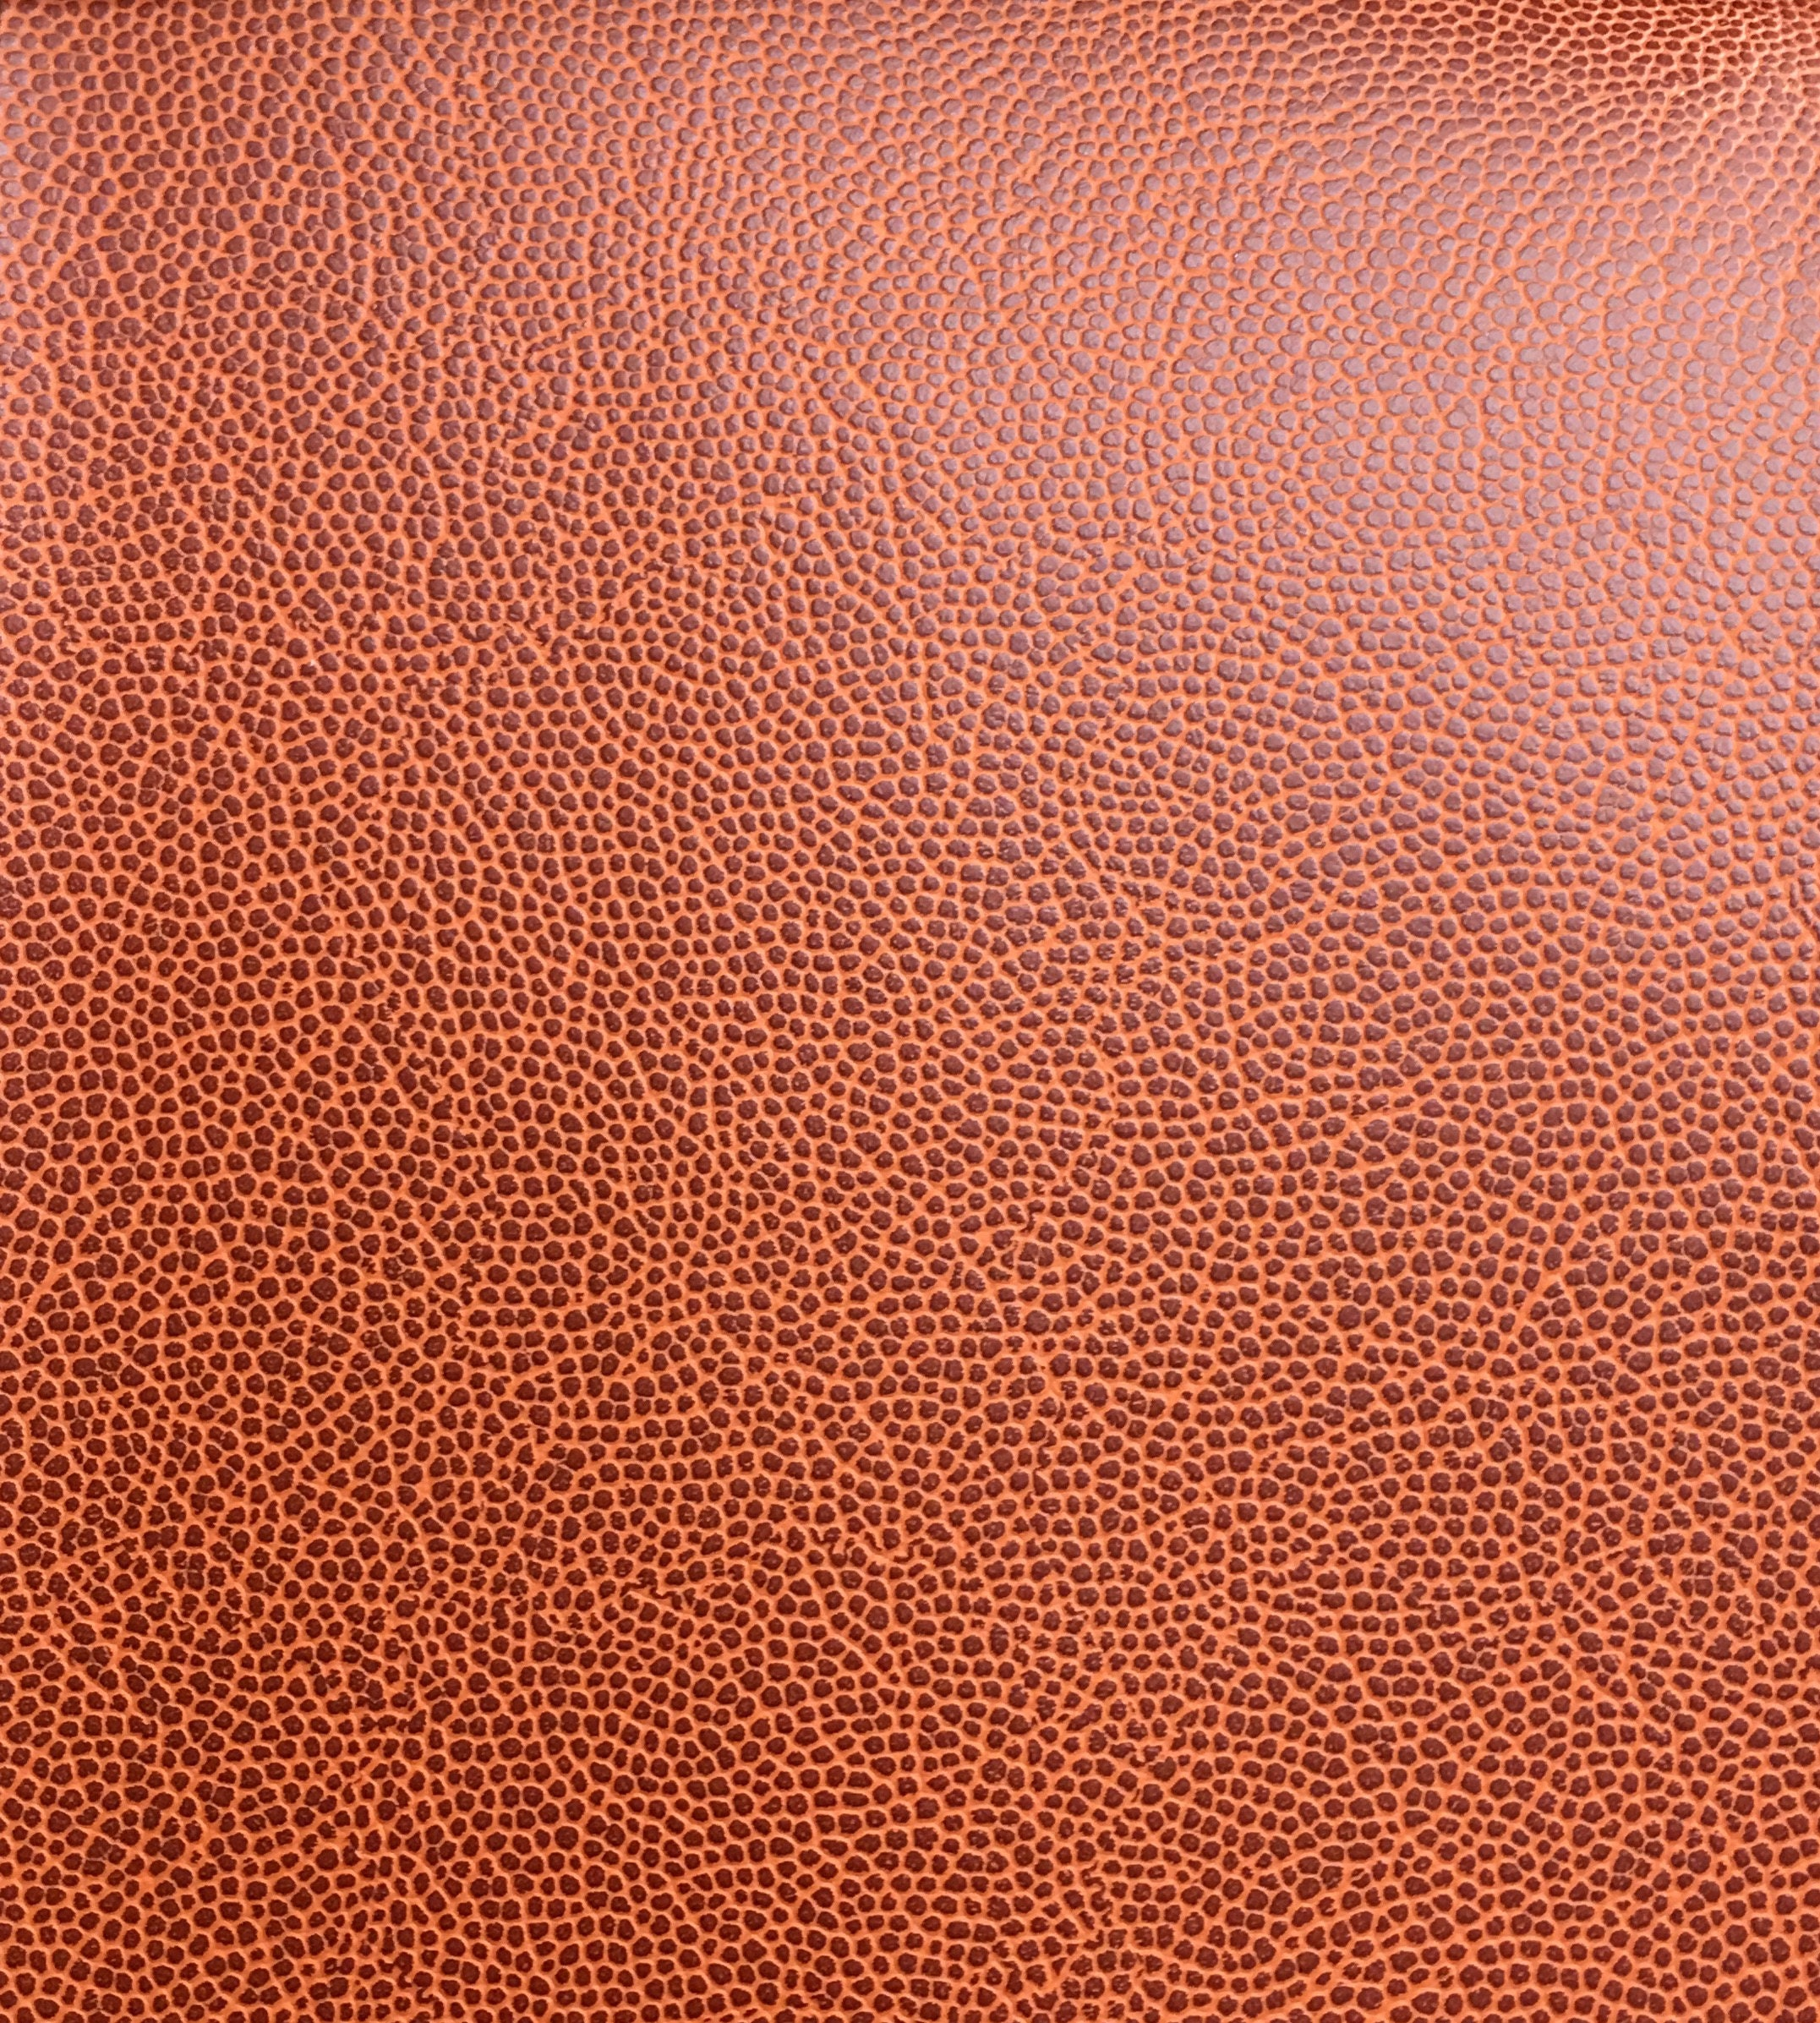 New Orange Basketball Upholstery Faux Leather Indoor Outdoor Etsy